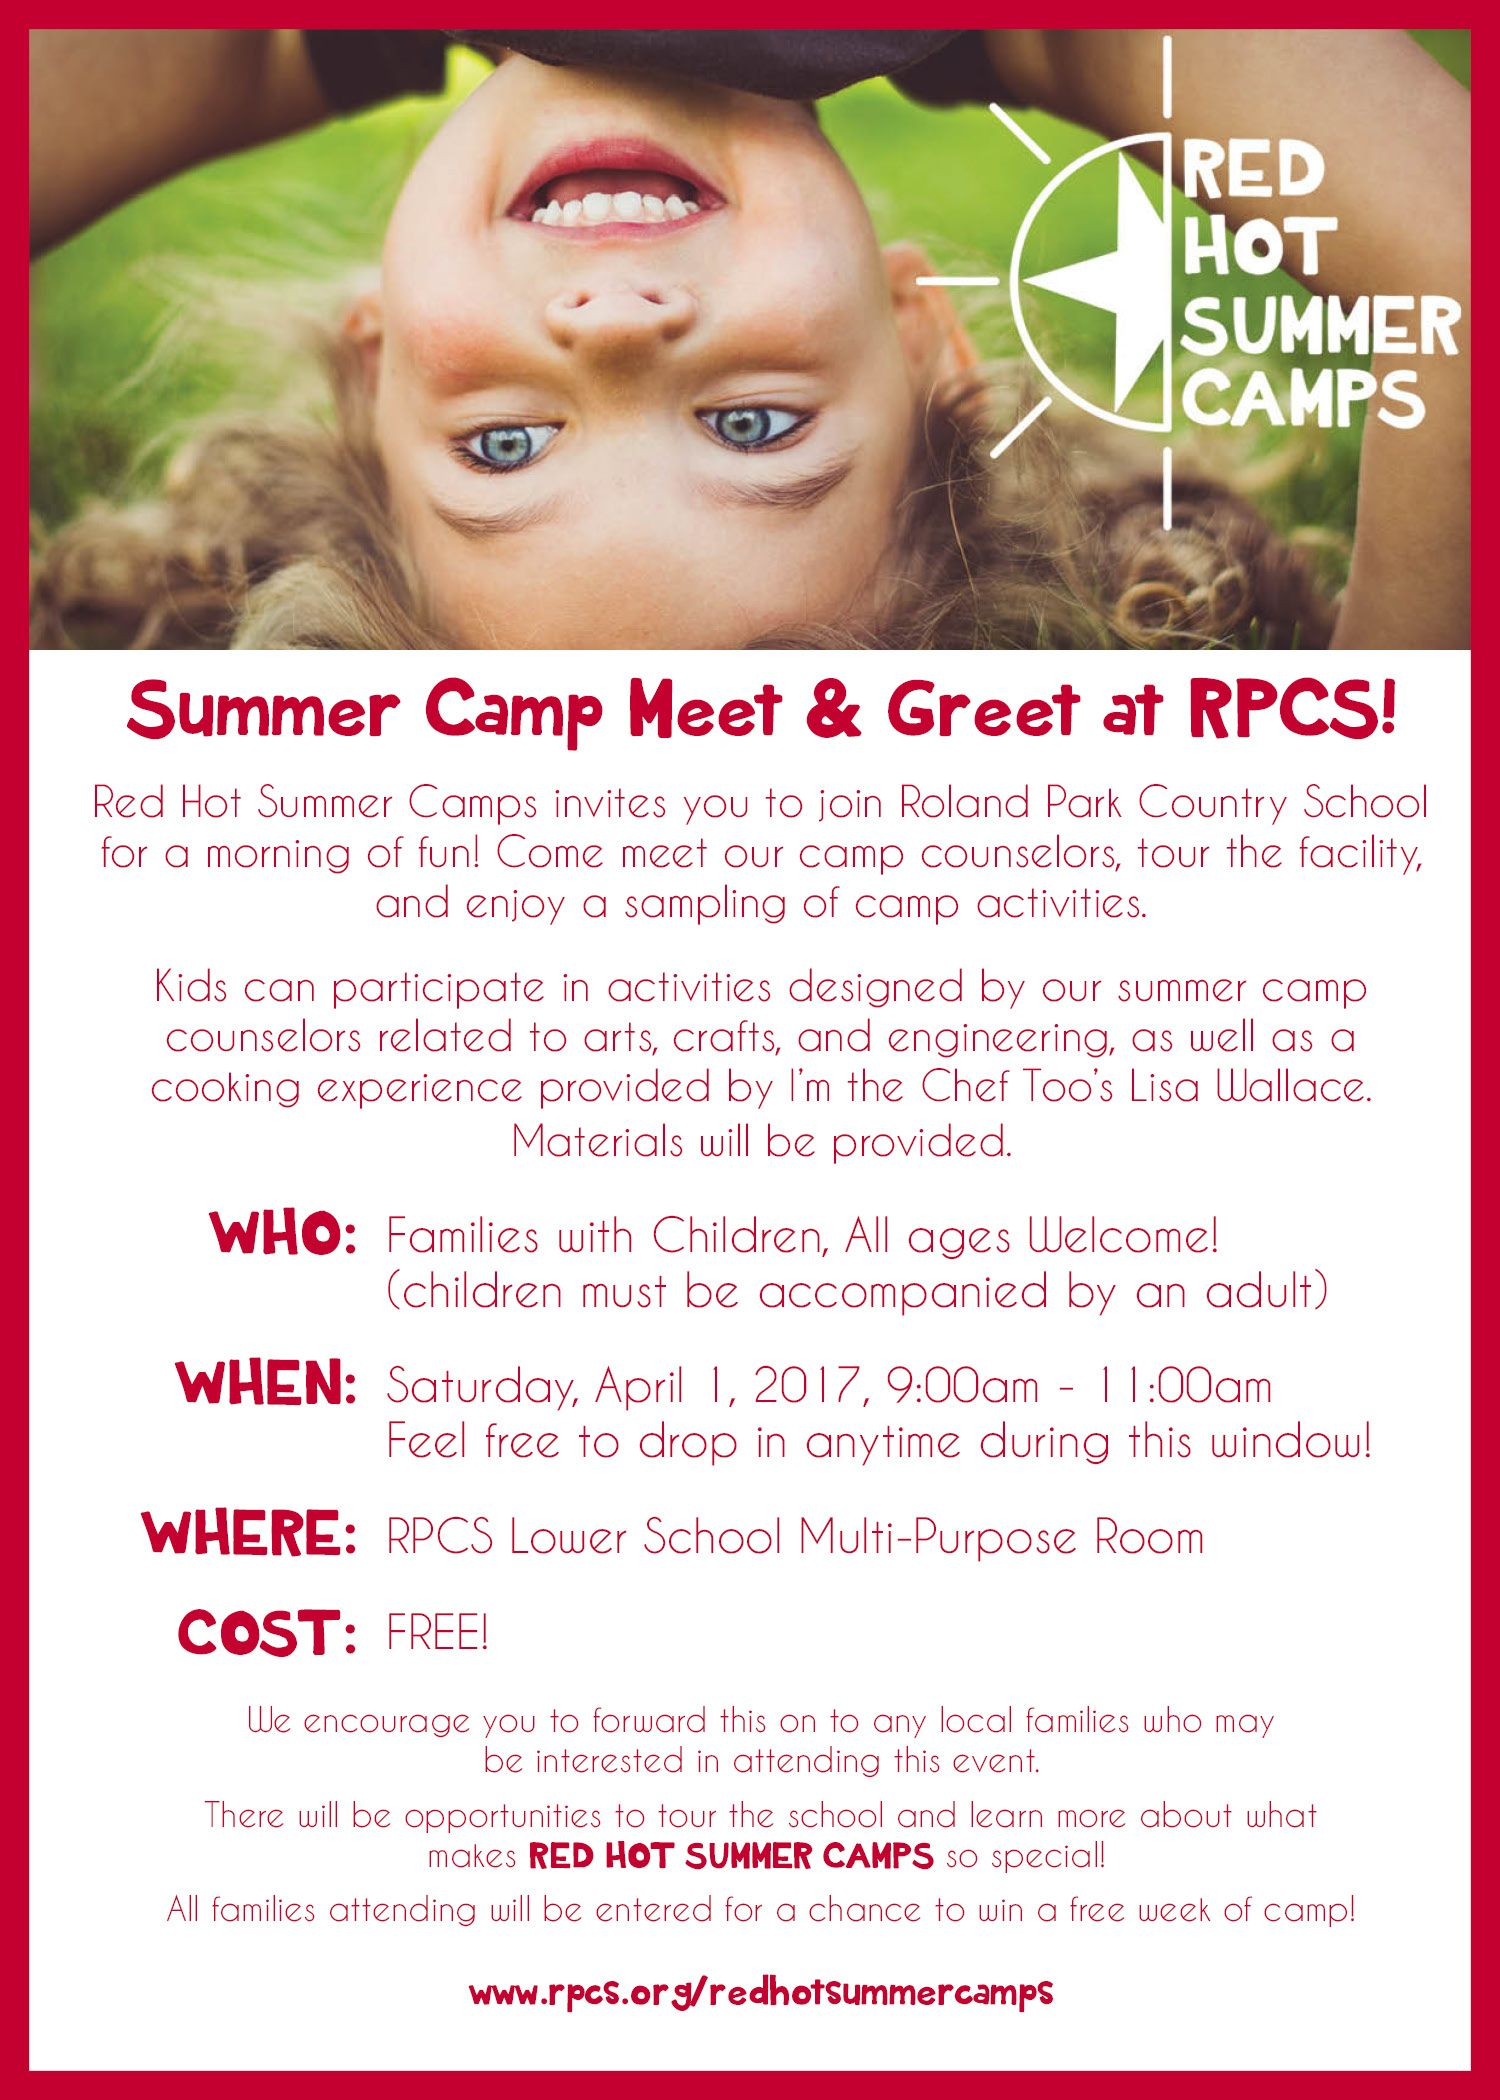 Roland Park Country School Summer Camp Meet Greet At Rpcs